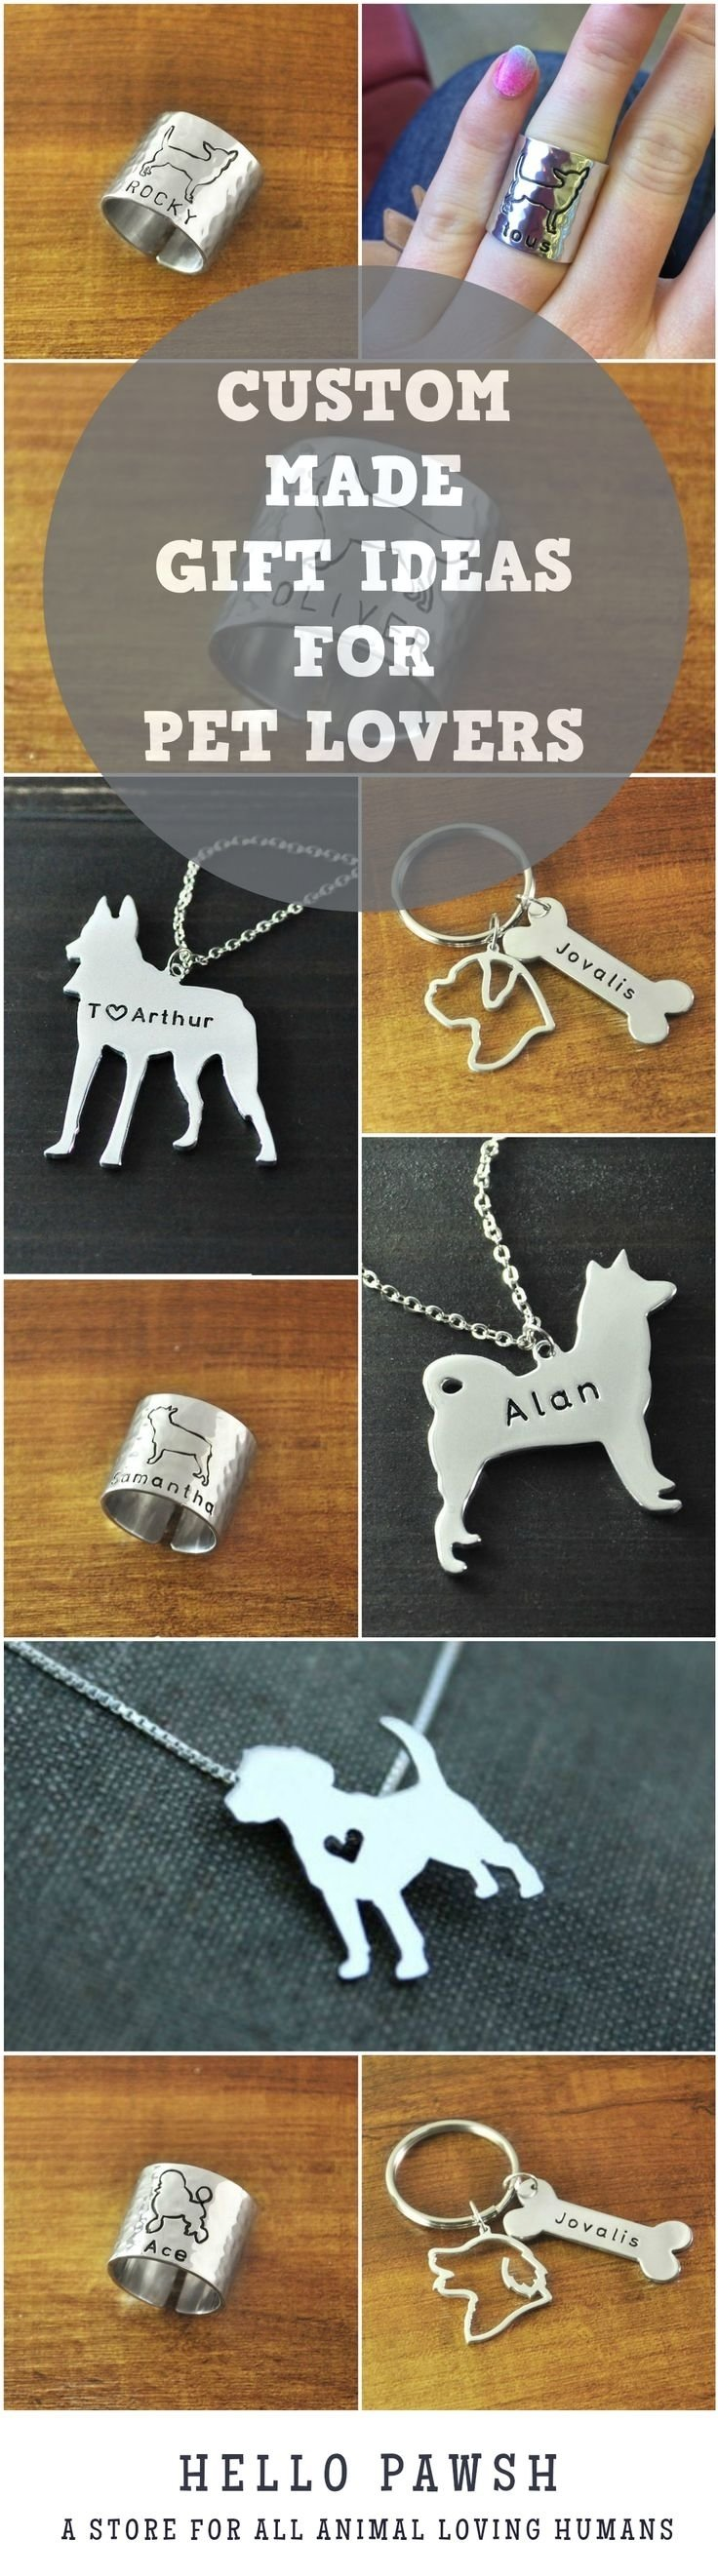 10 Great Gift Ideas For Animal Lovers 62 best i love dogs images on pinterest adorable animals animal 2020